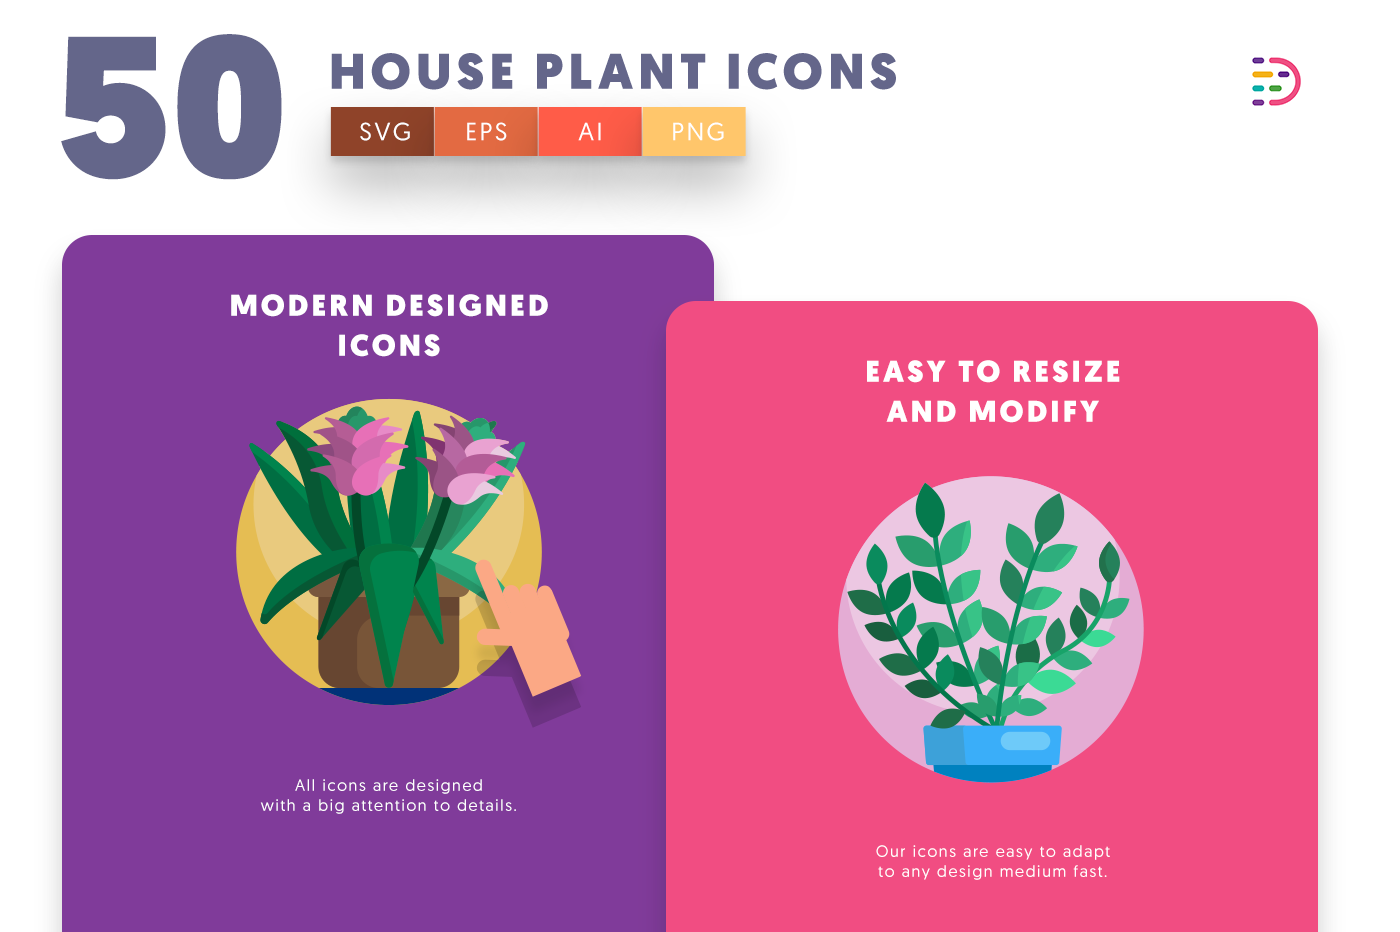 Drag and drop vector 50 House Plant Icons